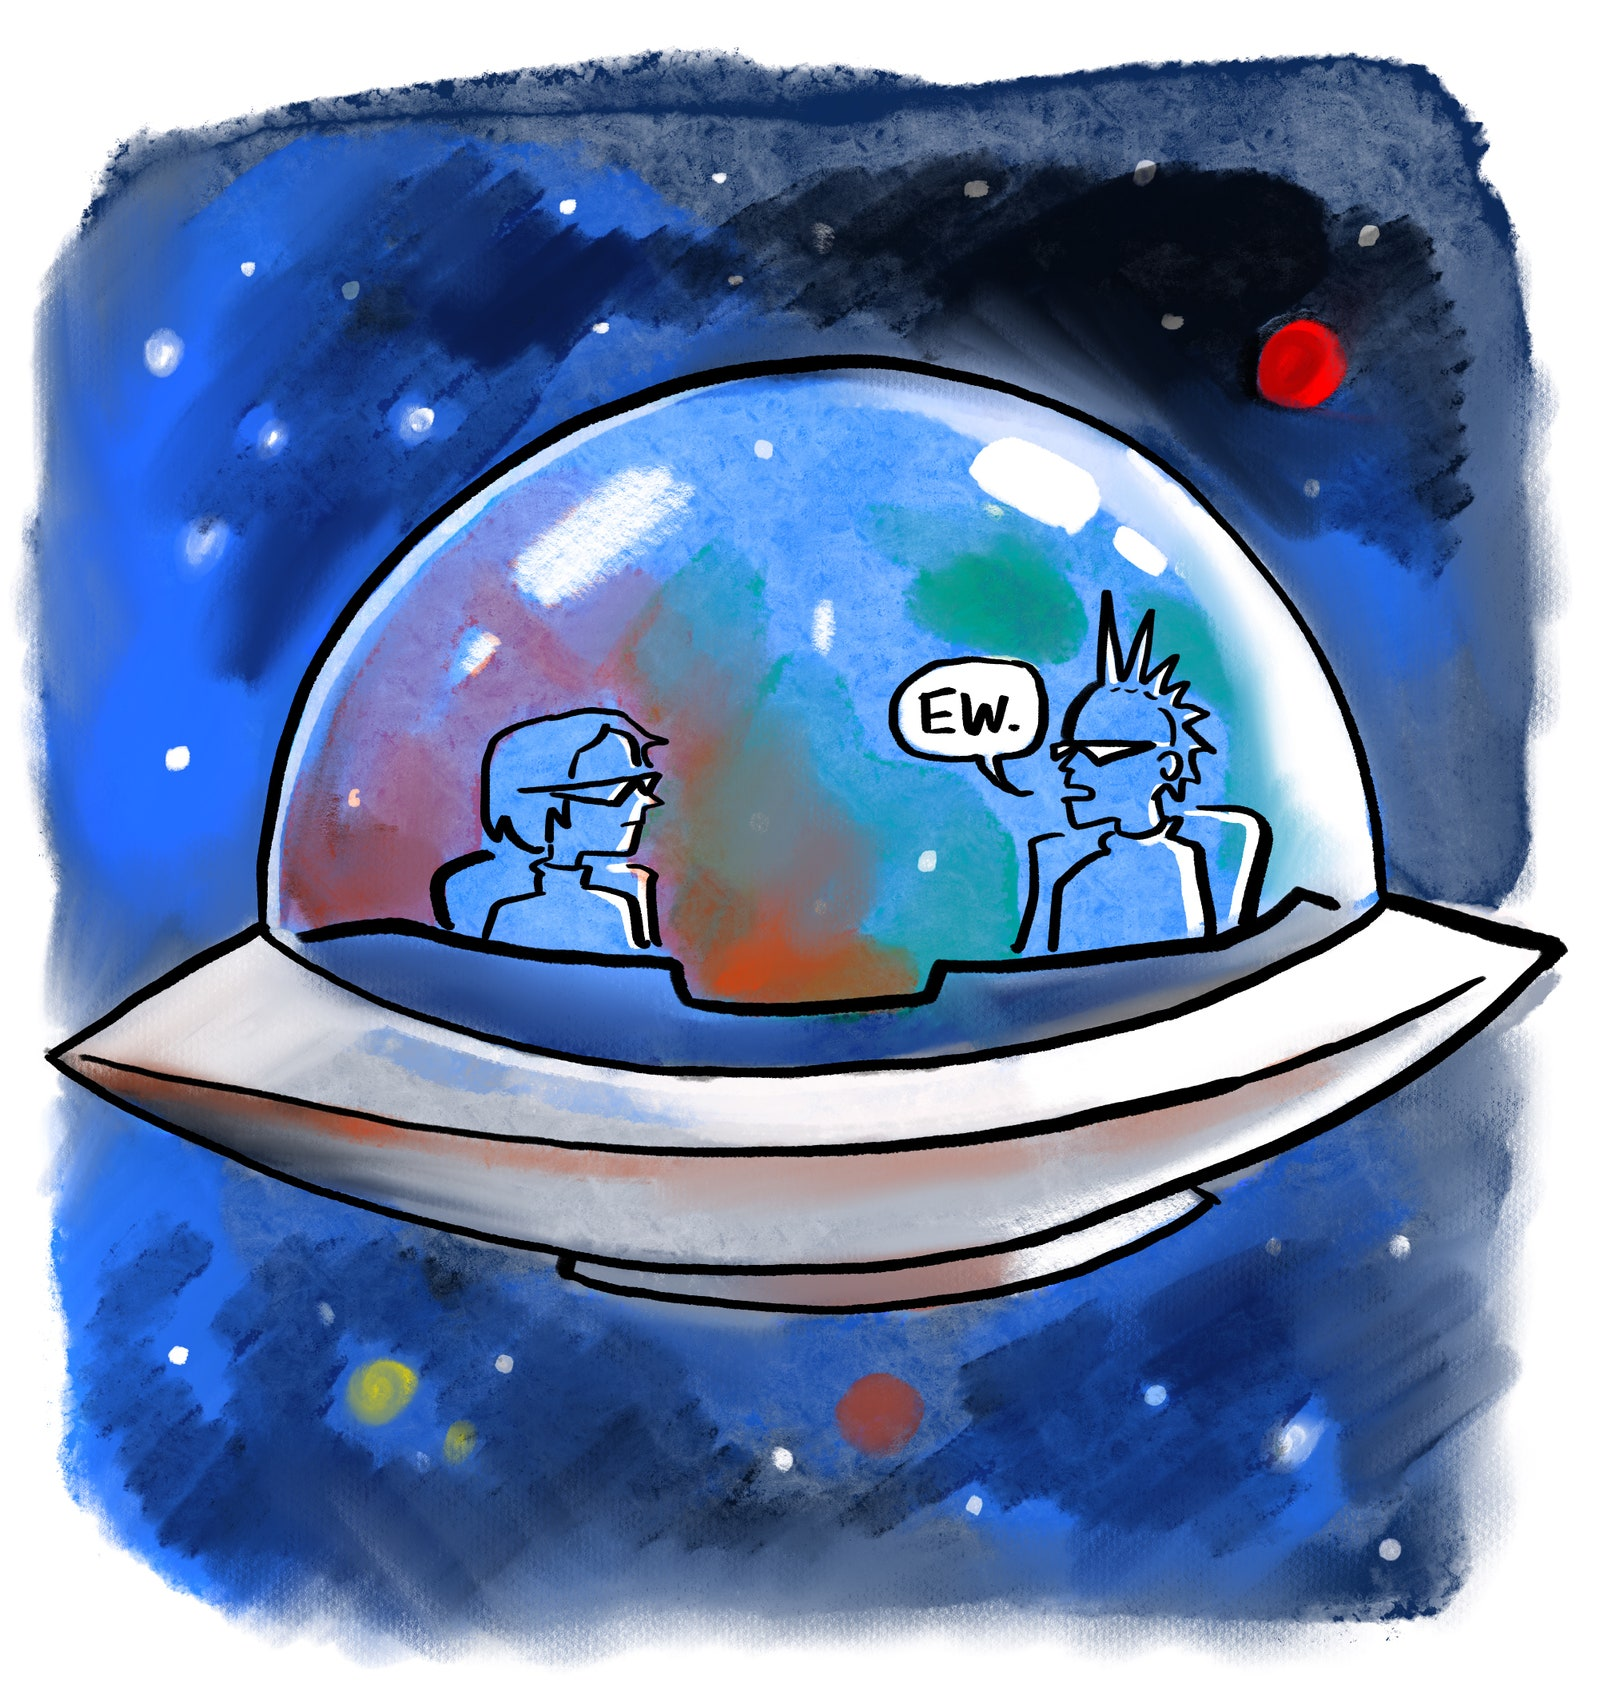 Two people in a spaceship.